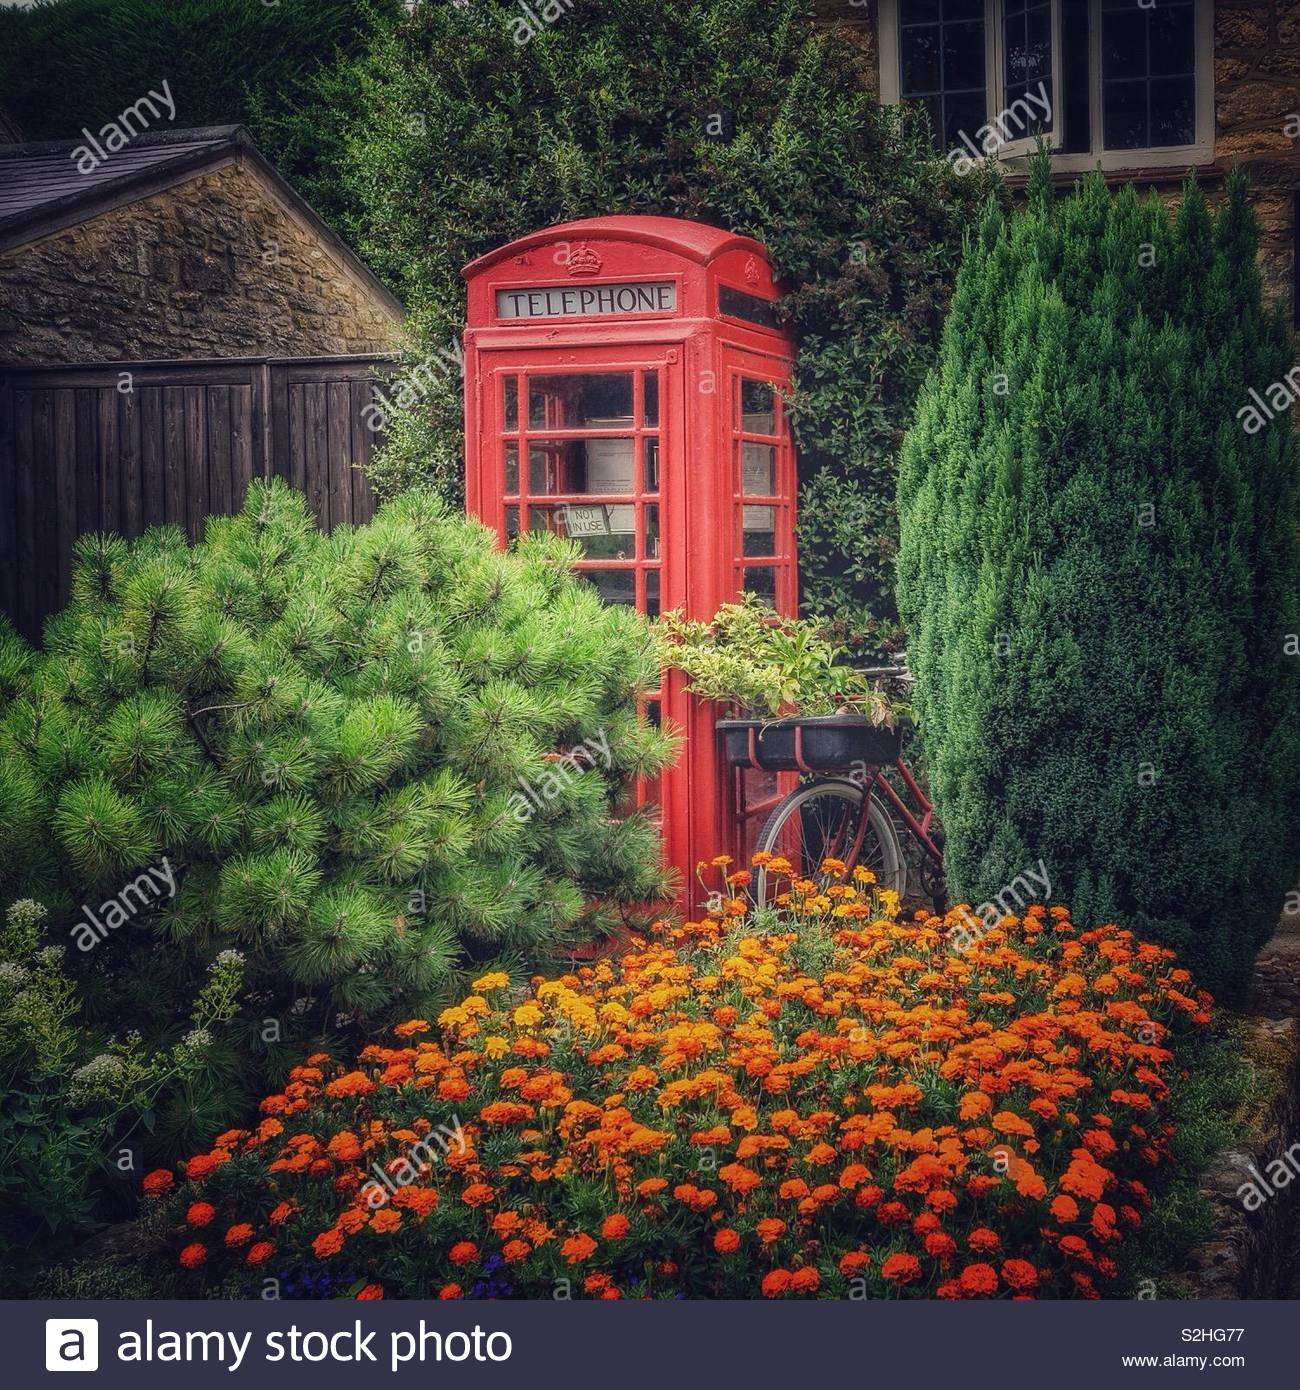 Old red telephone kiosk and vintage bicycle in the garden of an old post office, Weston Underwood, UK. - Stock Image